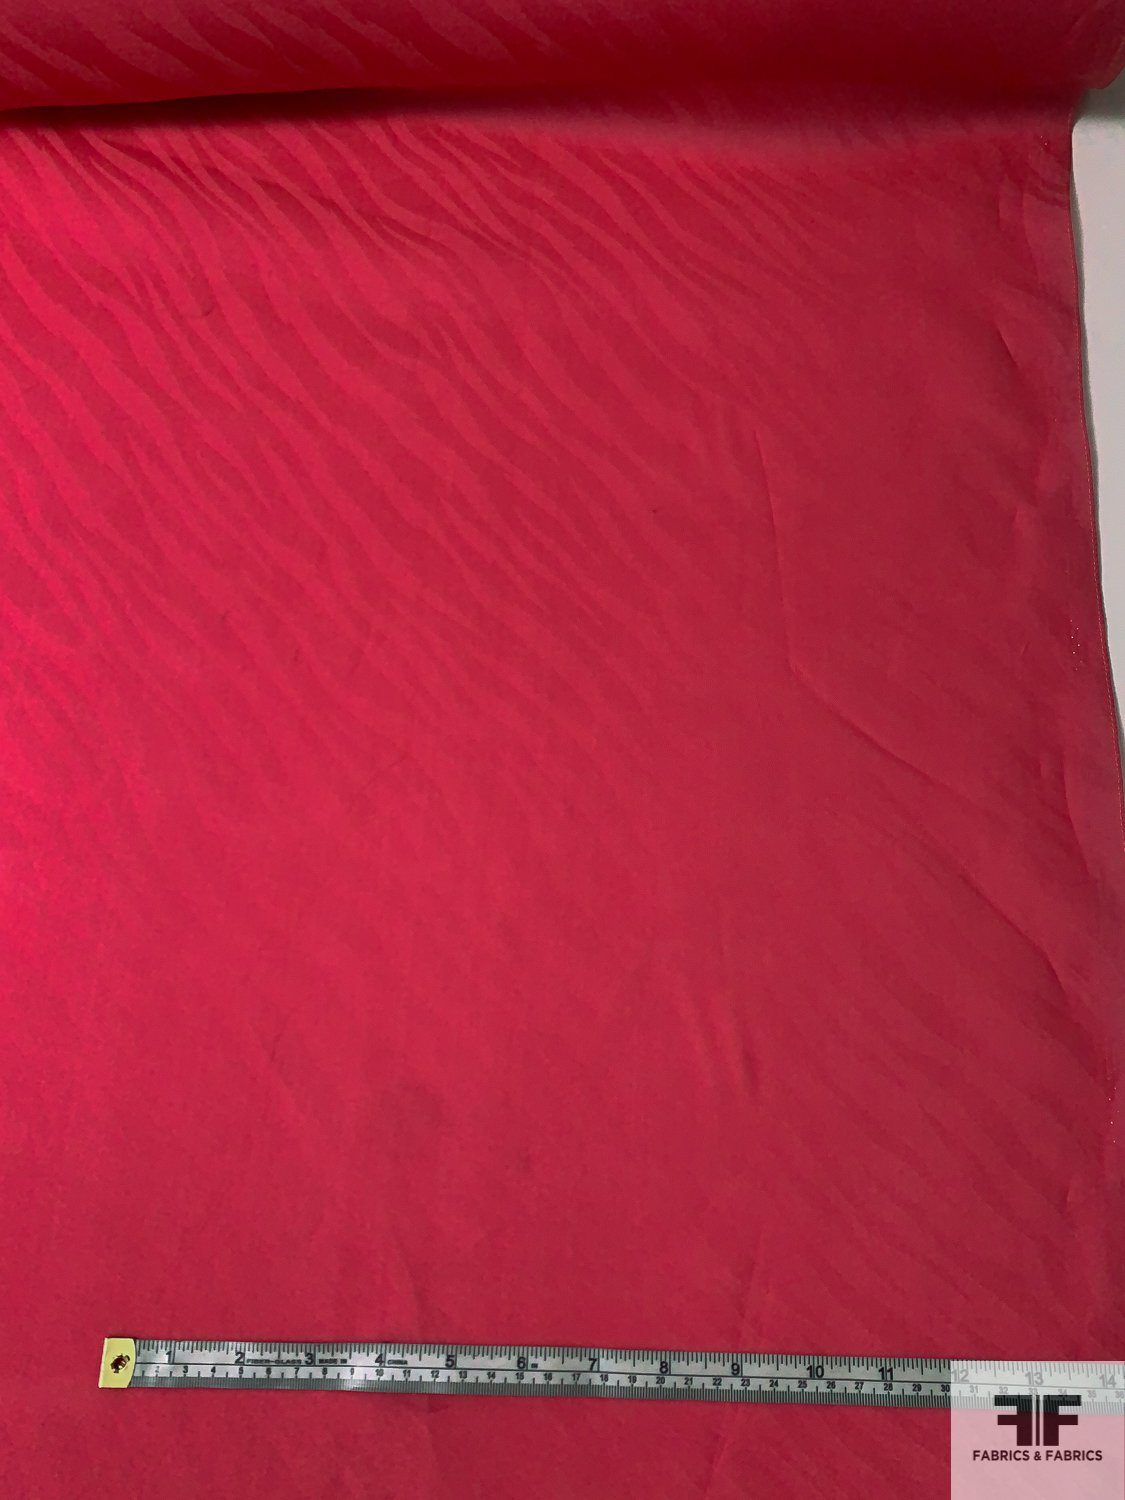 Italian Satin Faced Organza with Wavy Jacquard Pattern - Berry Pink